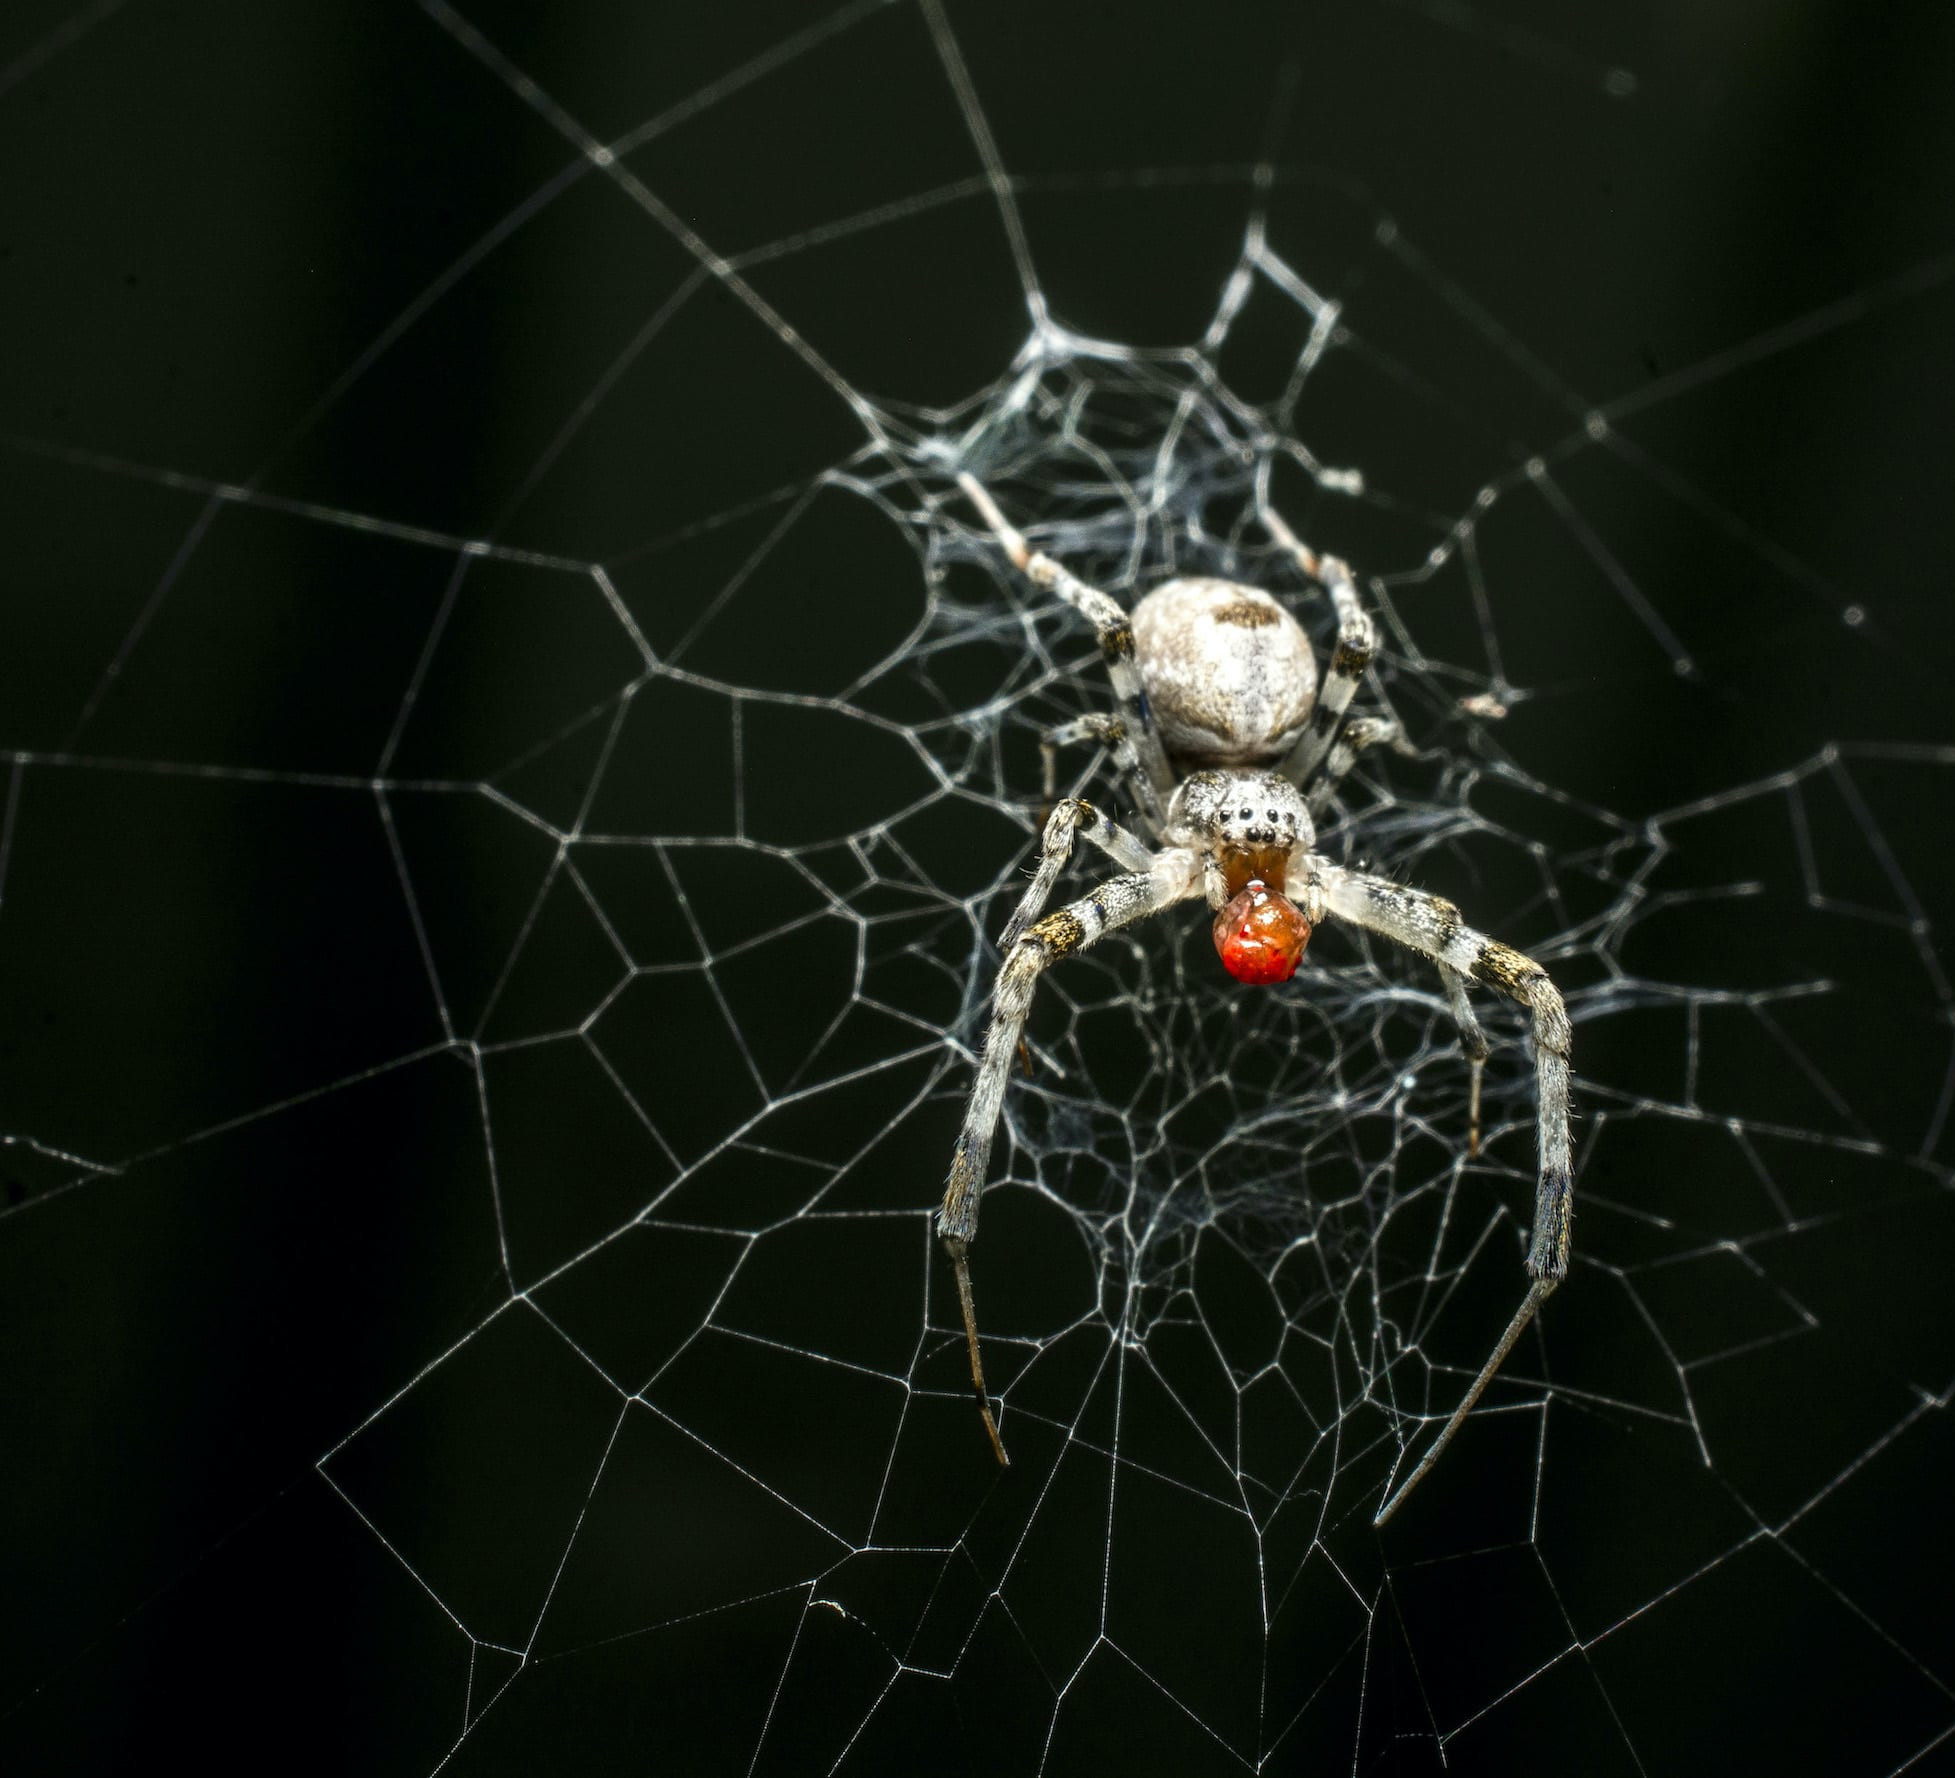 Orb-weaving Spiders in Art and Imagination